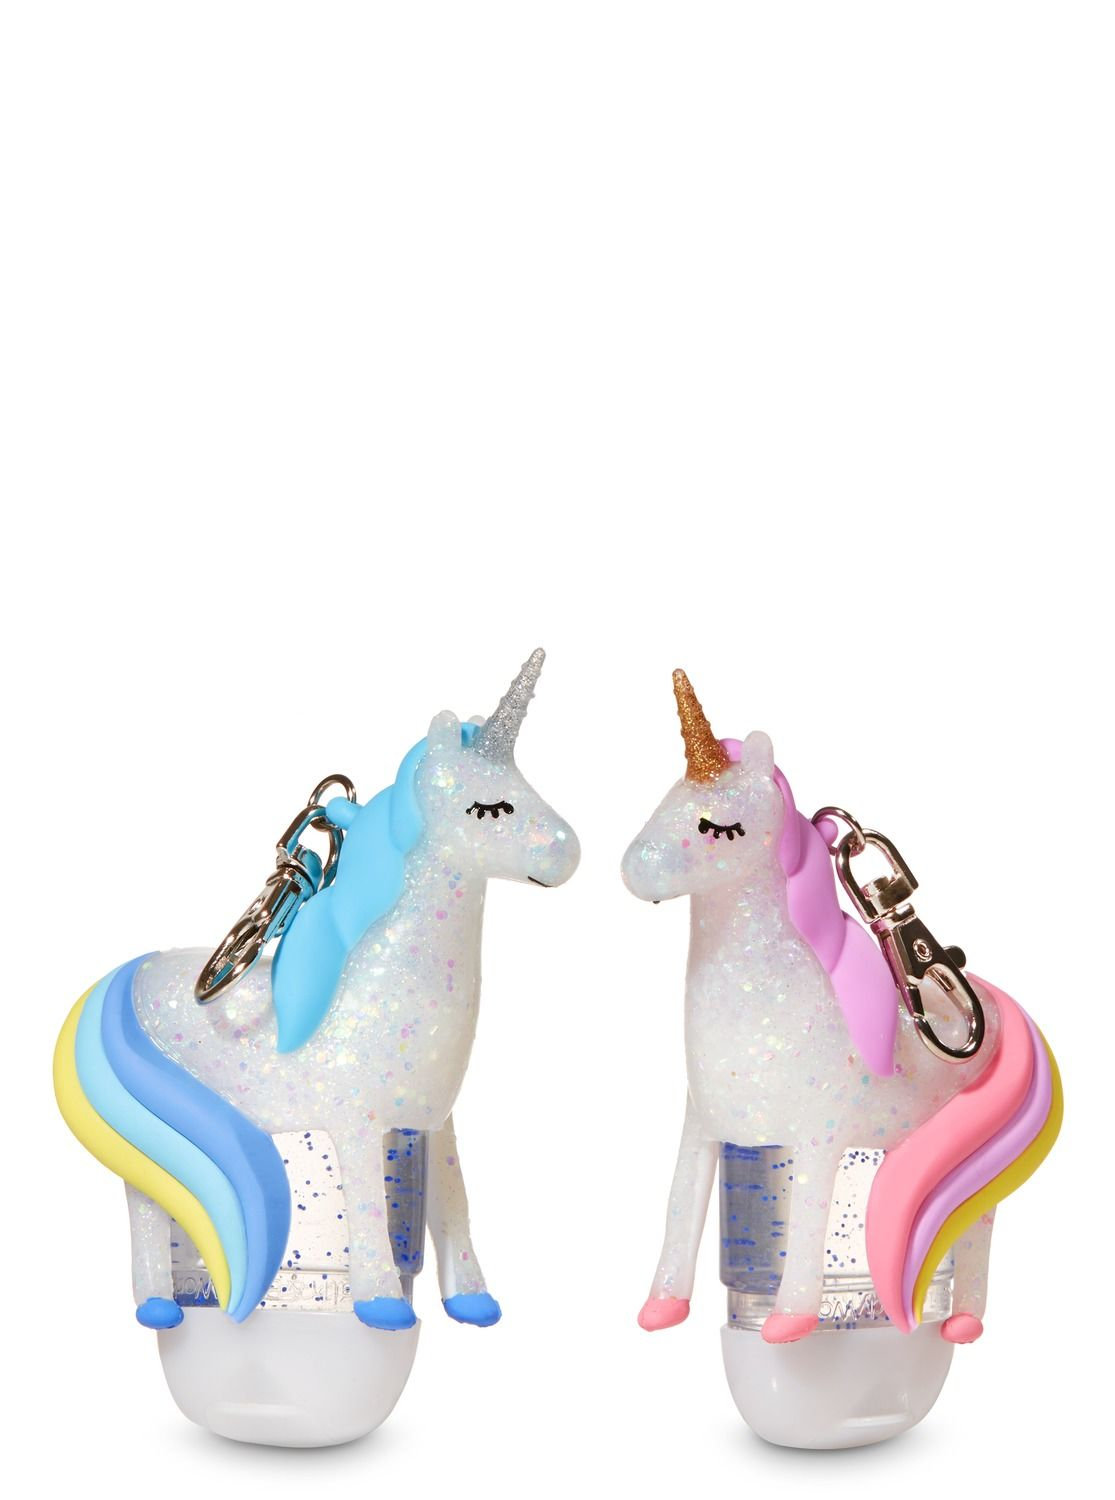 Be My Bff Unicorns Pocketbac Holders By Bath Body Works Bath